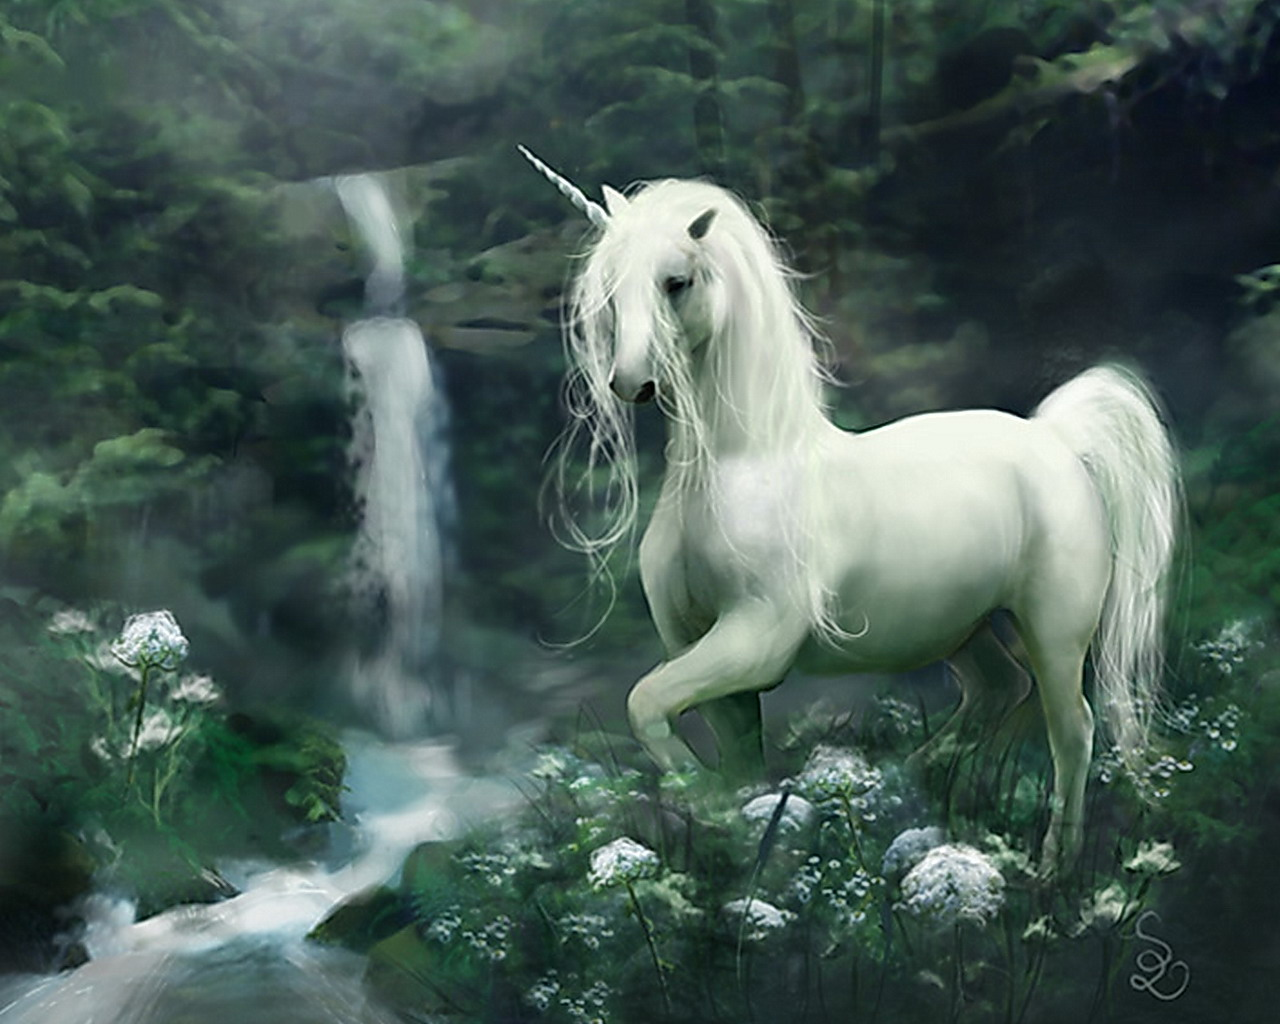 unicorn in mythology